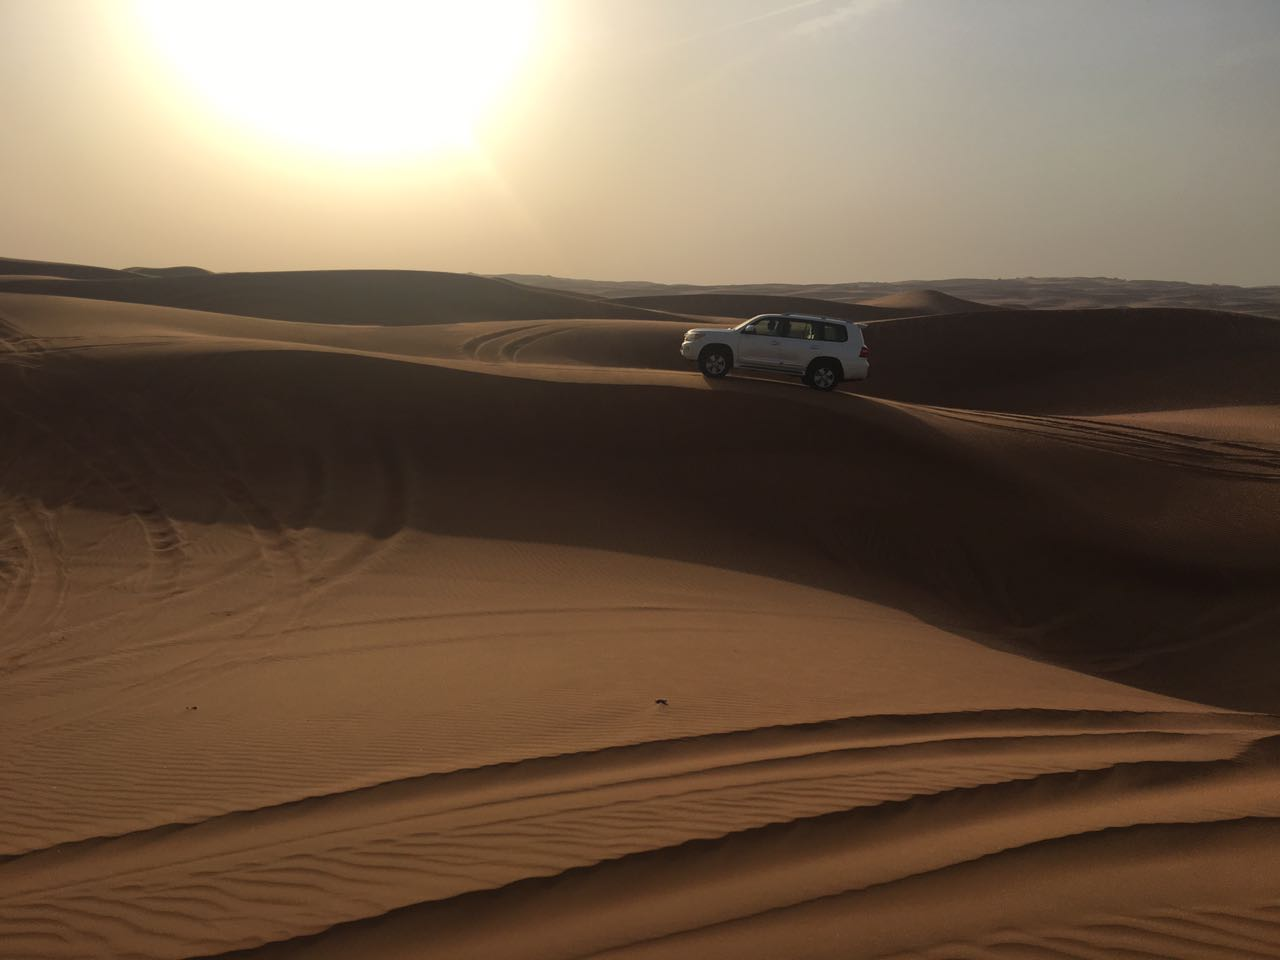 evening desert safari deals